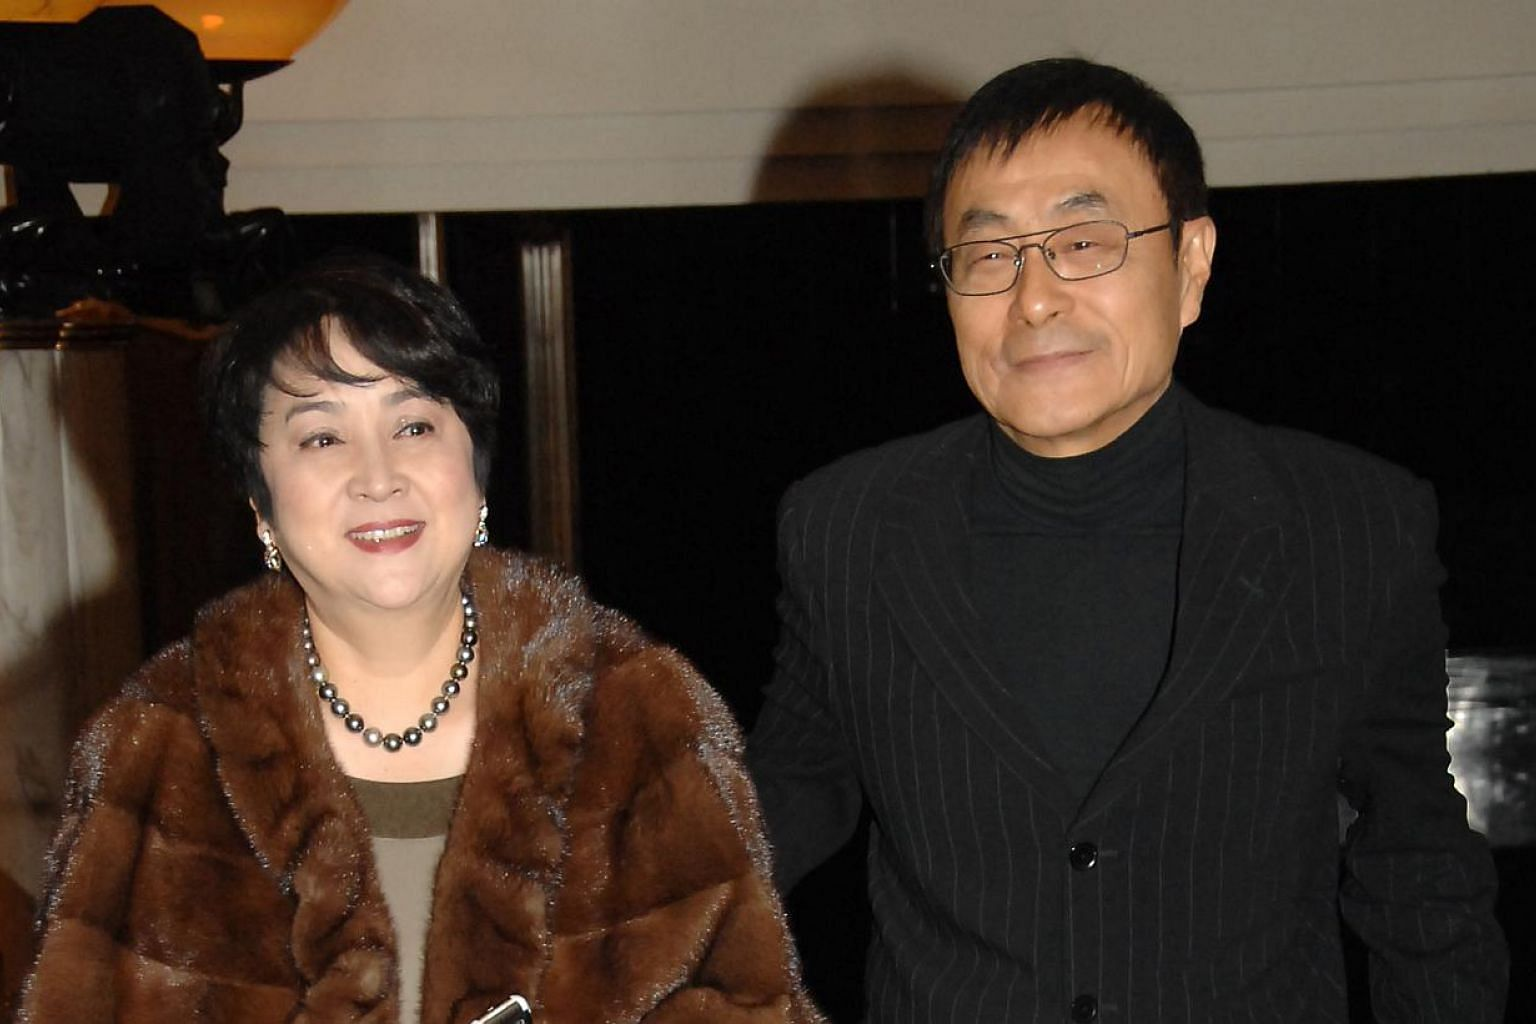 Seventies movie sweetheart Chen Chen (left) and legendary entertainer Liu Chia-chang (right) have been divorced for more than 20 years, but kept up the pretence of being married to protect their son, she revealed on Wednesday, May 20, 2015. -- PHOTO: